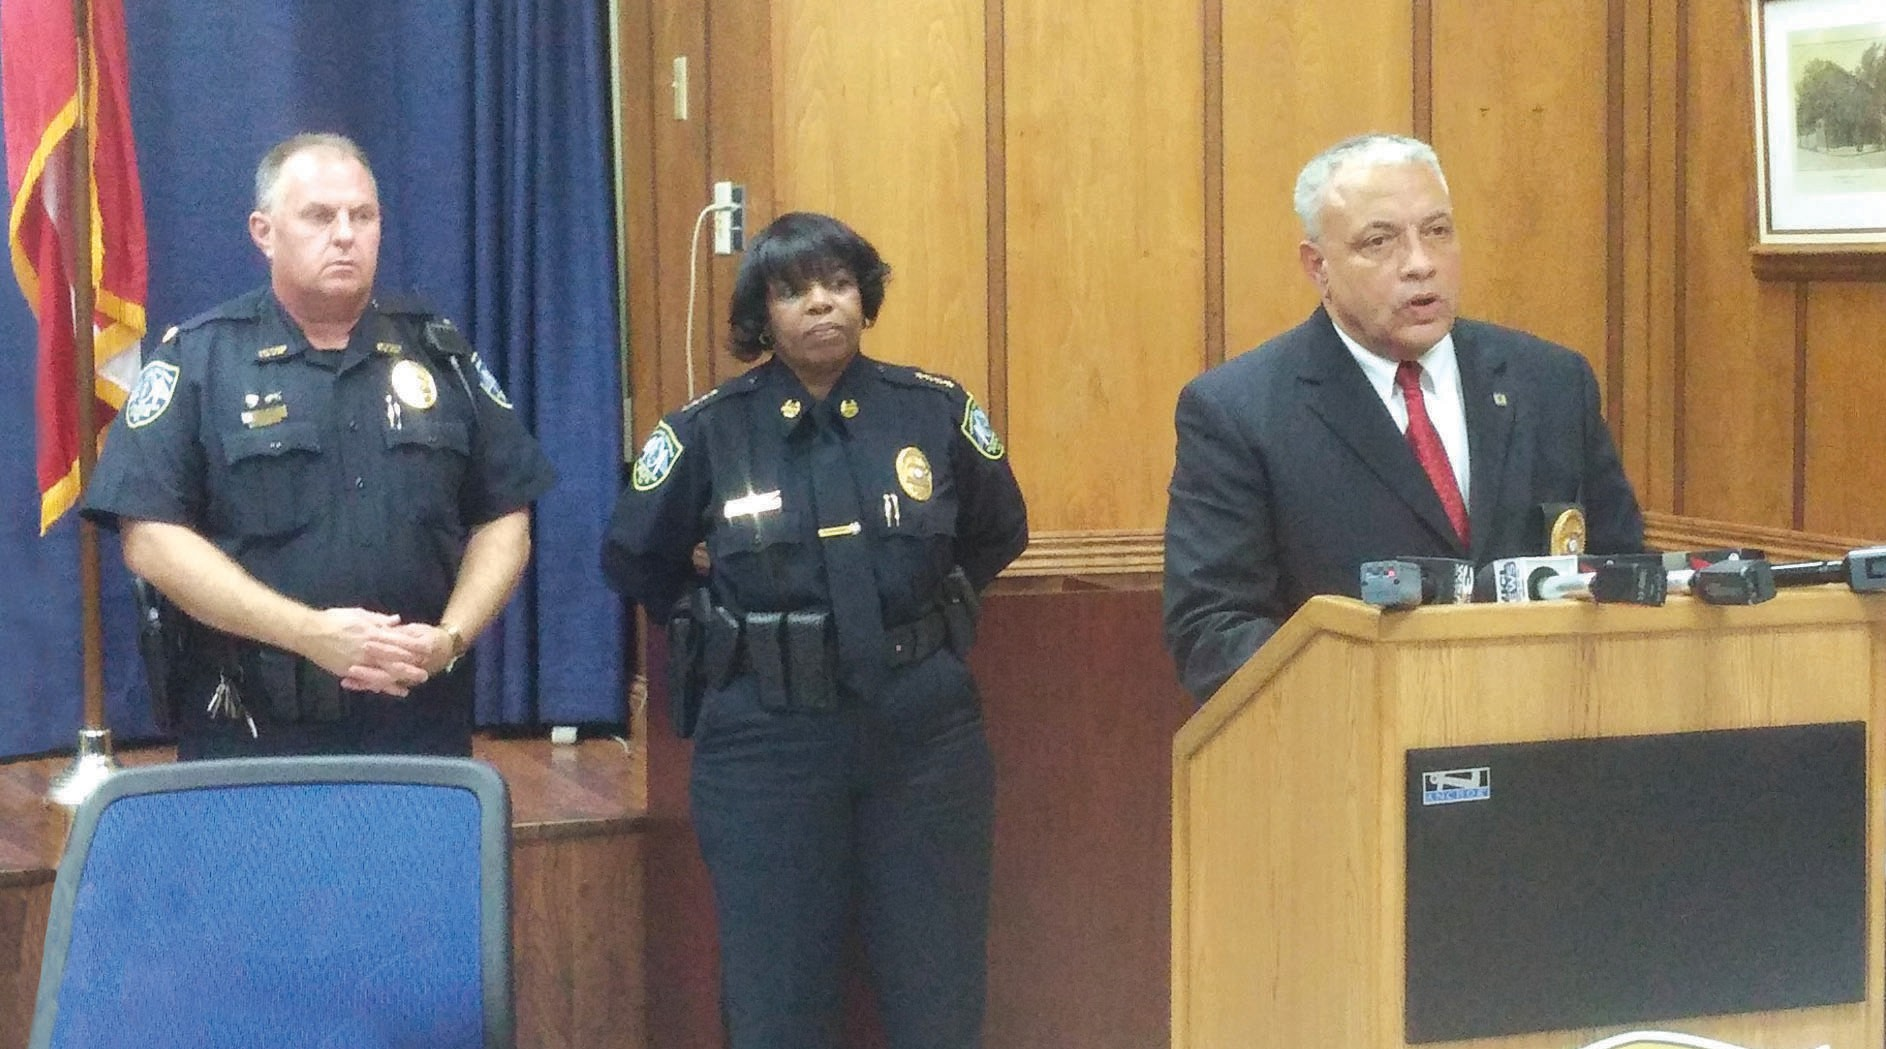 Police Chief Jack Lumpkin addressing the press concerning recent shootings.